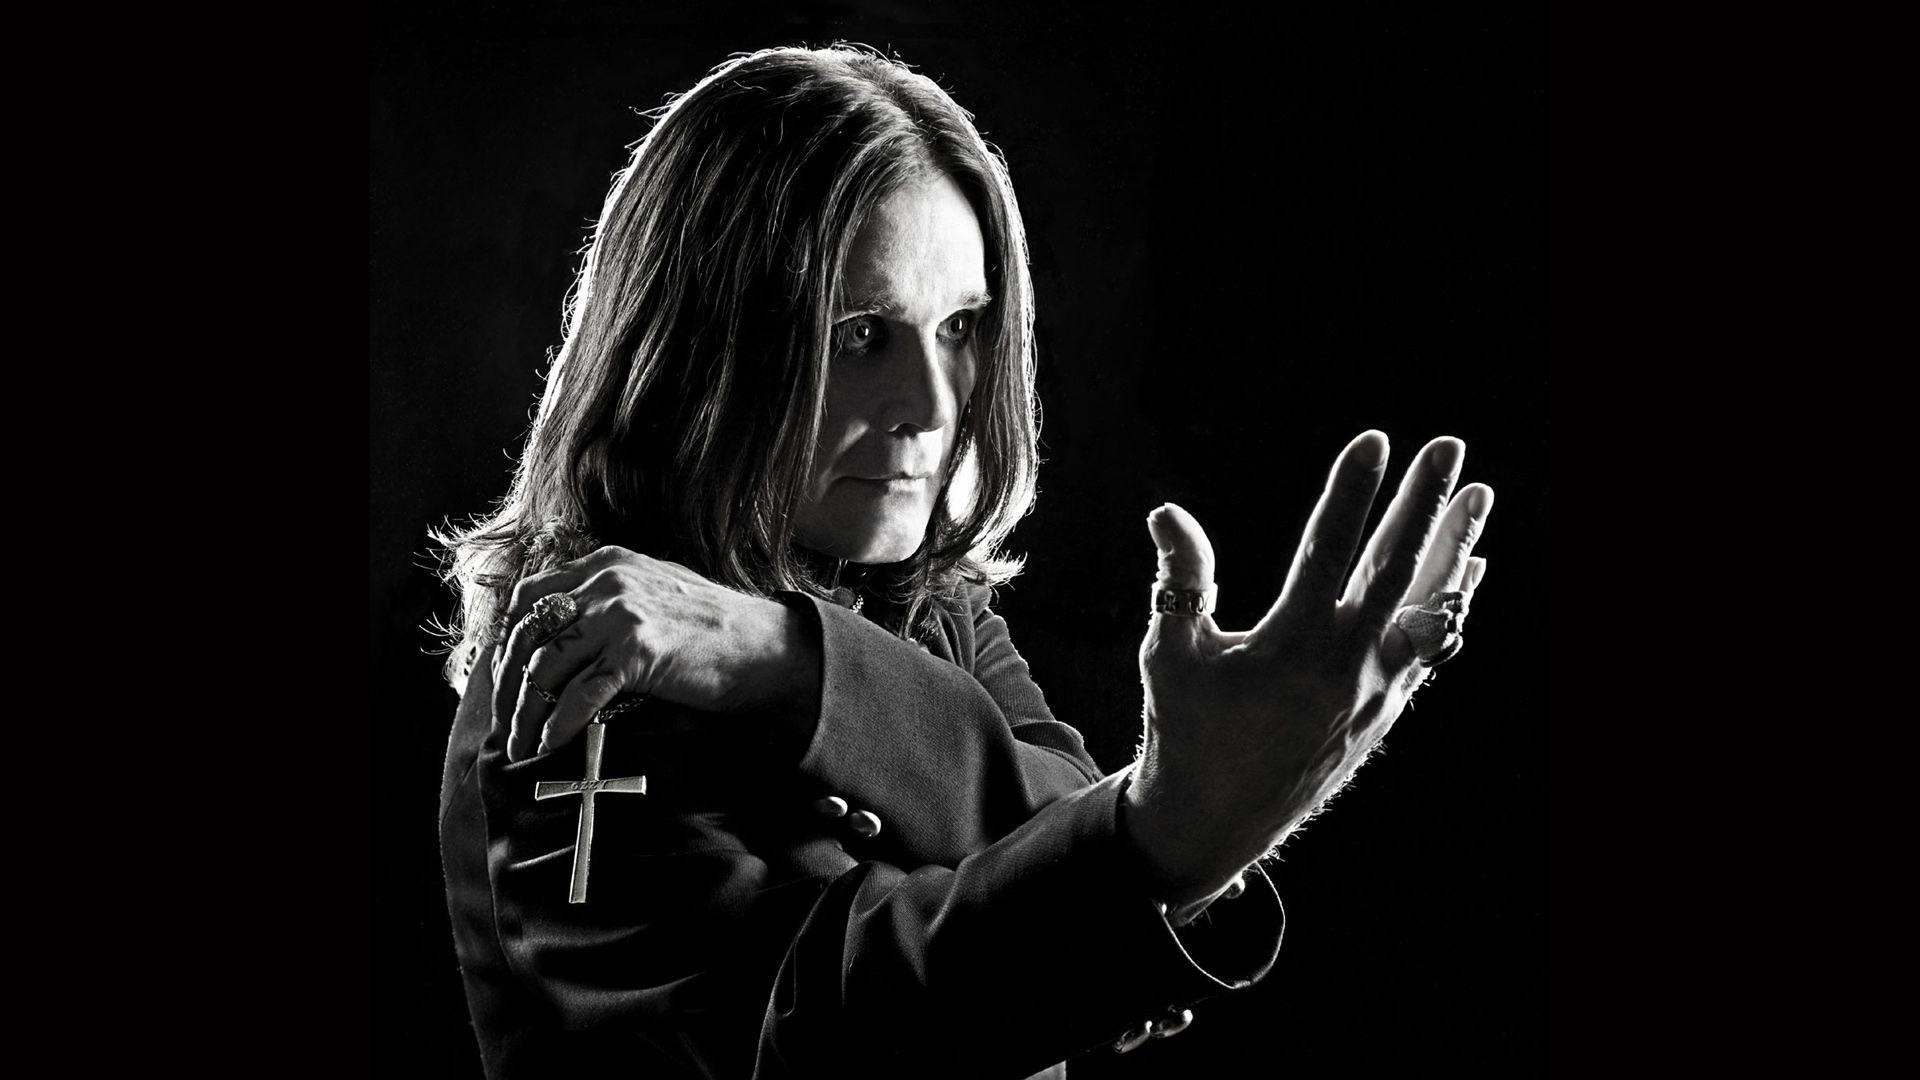 1920x1080 Images For Ozzy Osbourne Wallpaper